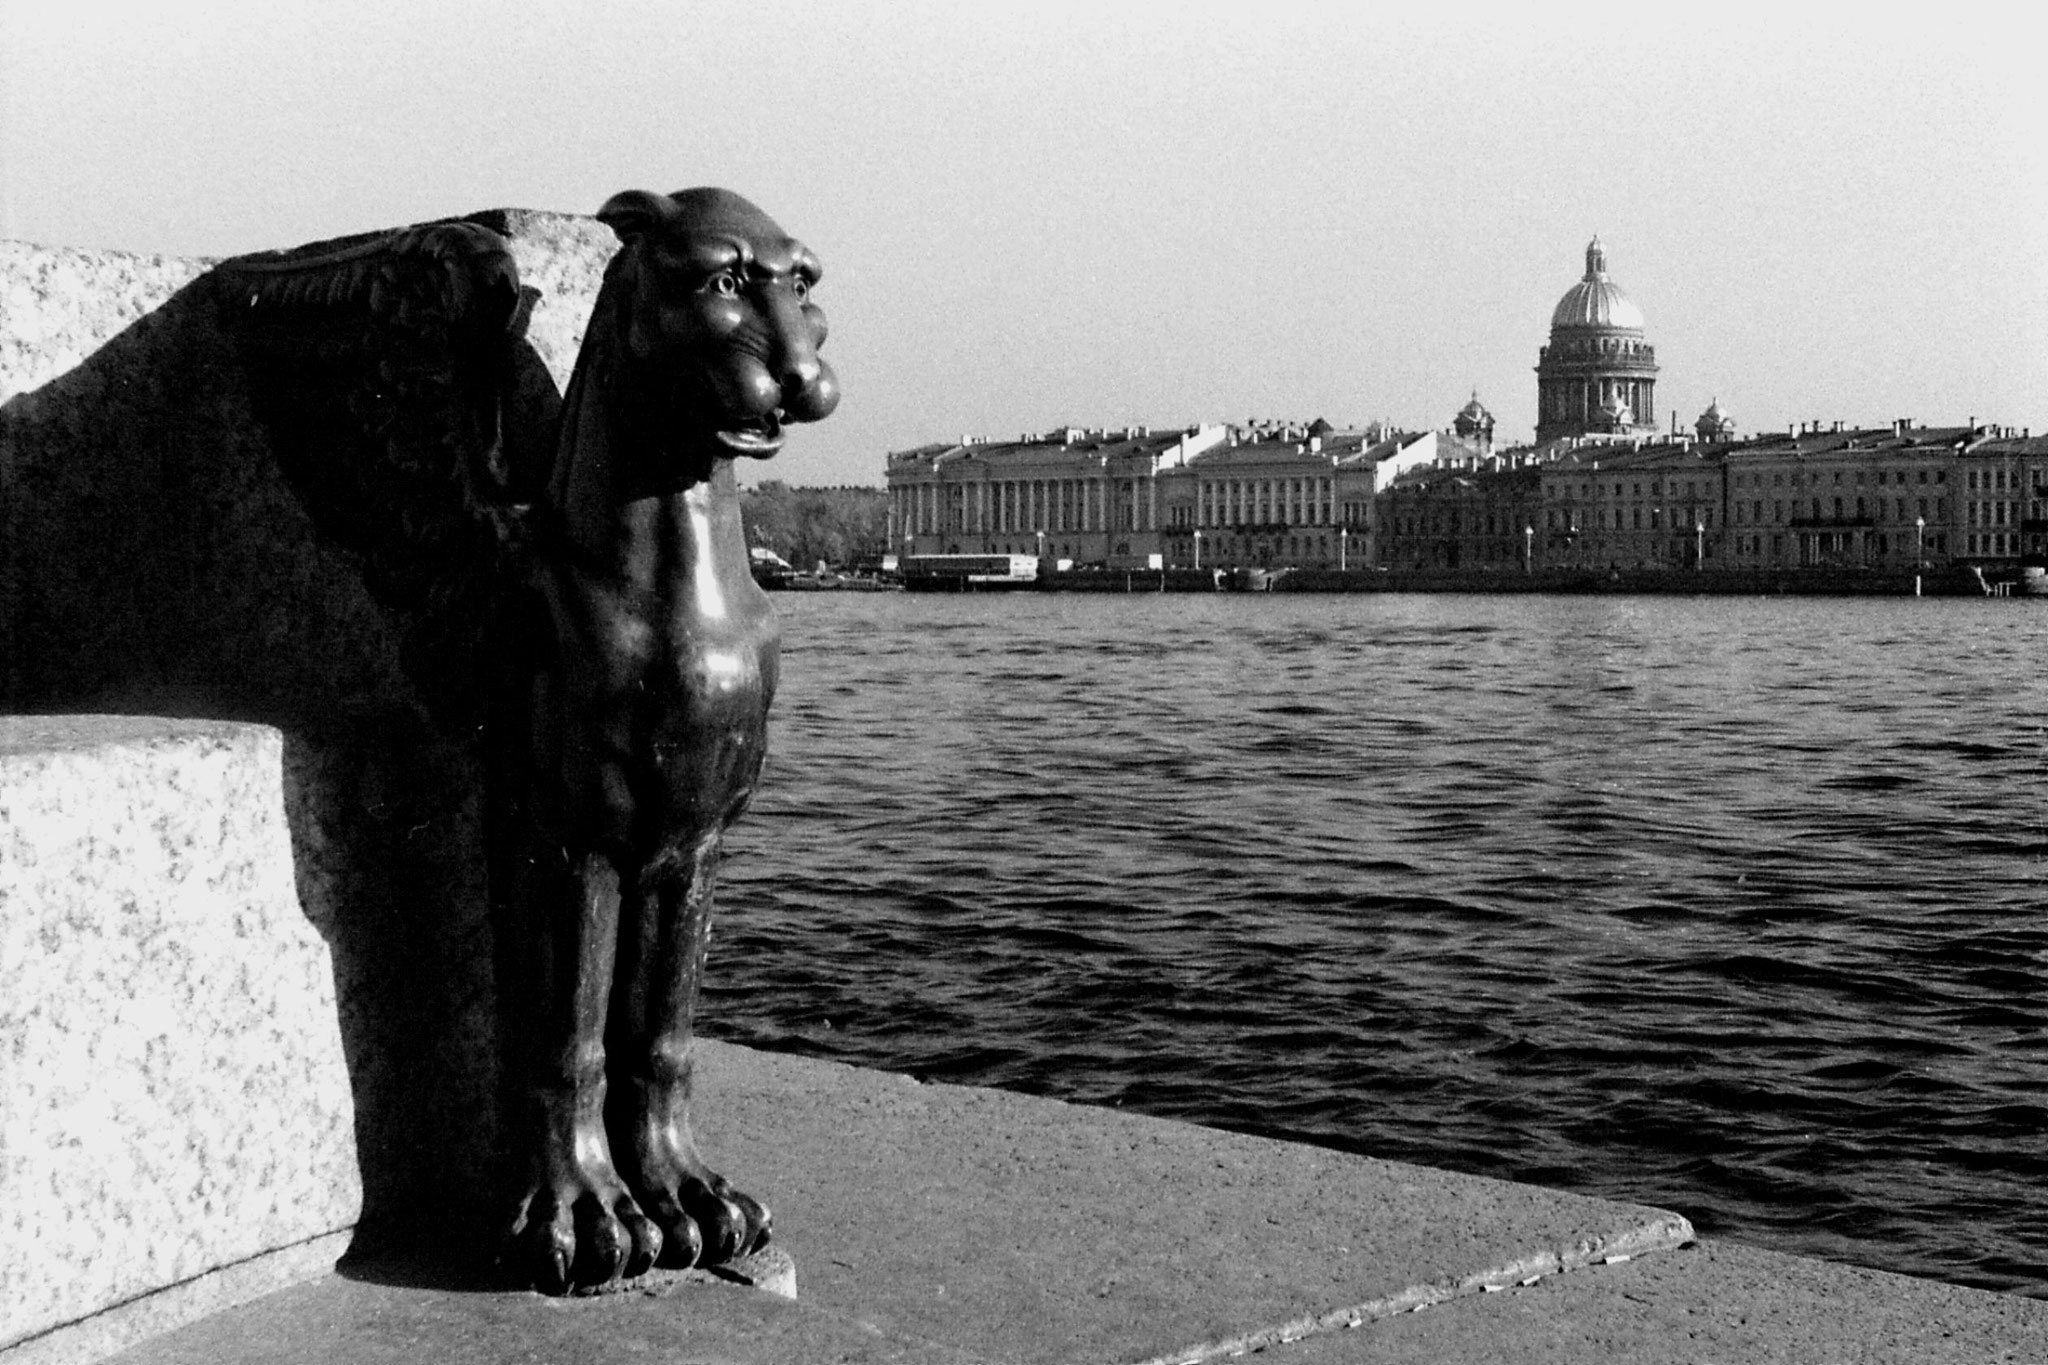 13/10/1988: 11: Griffin in front of Art Academy, Isaac cathedral across river